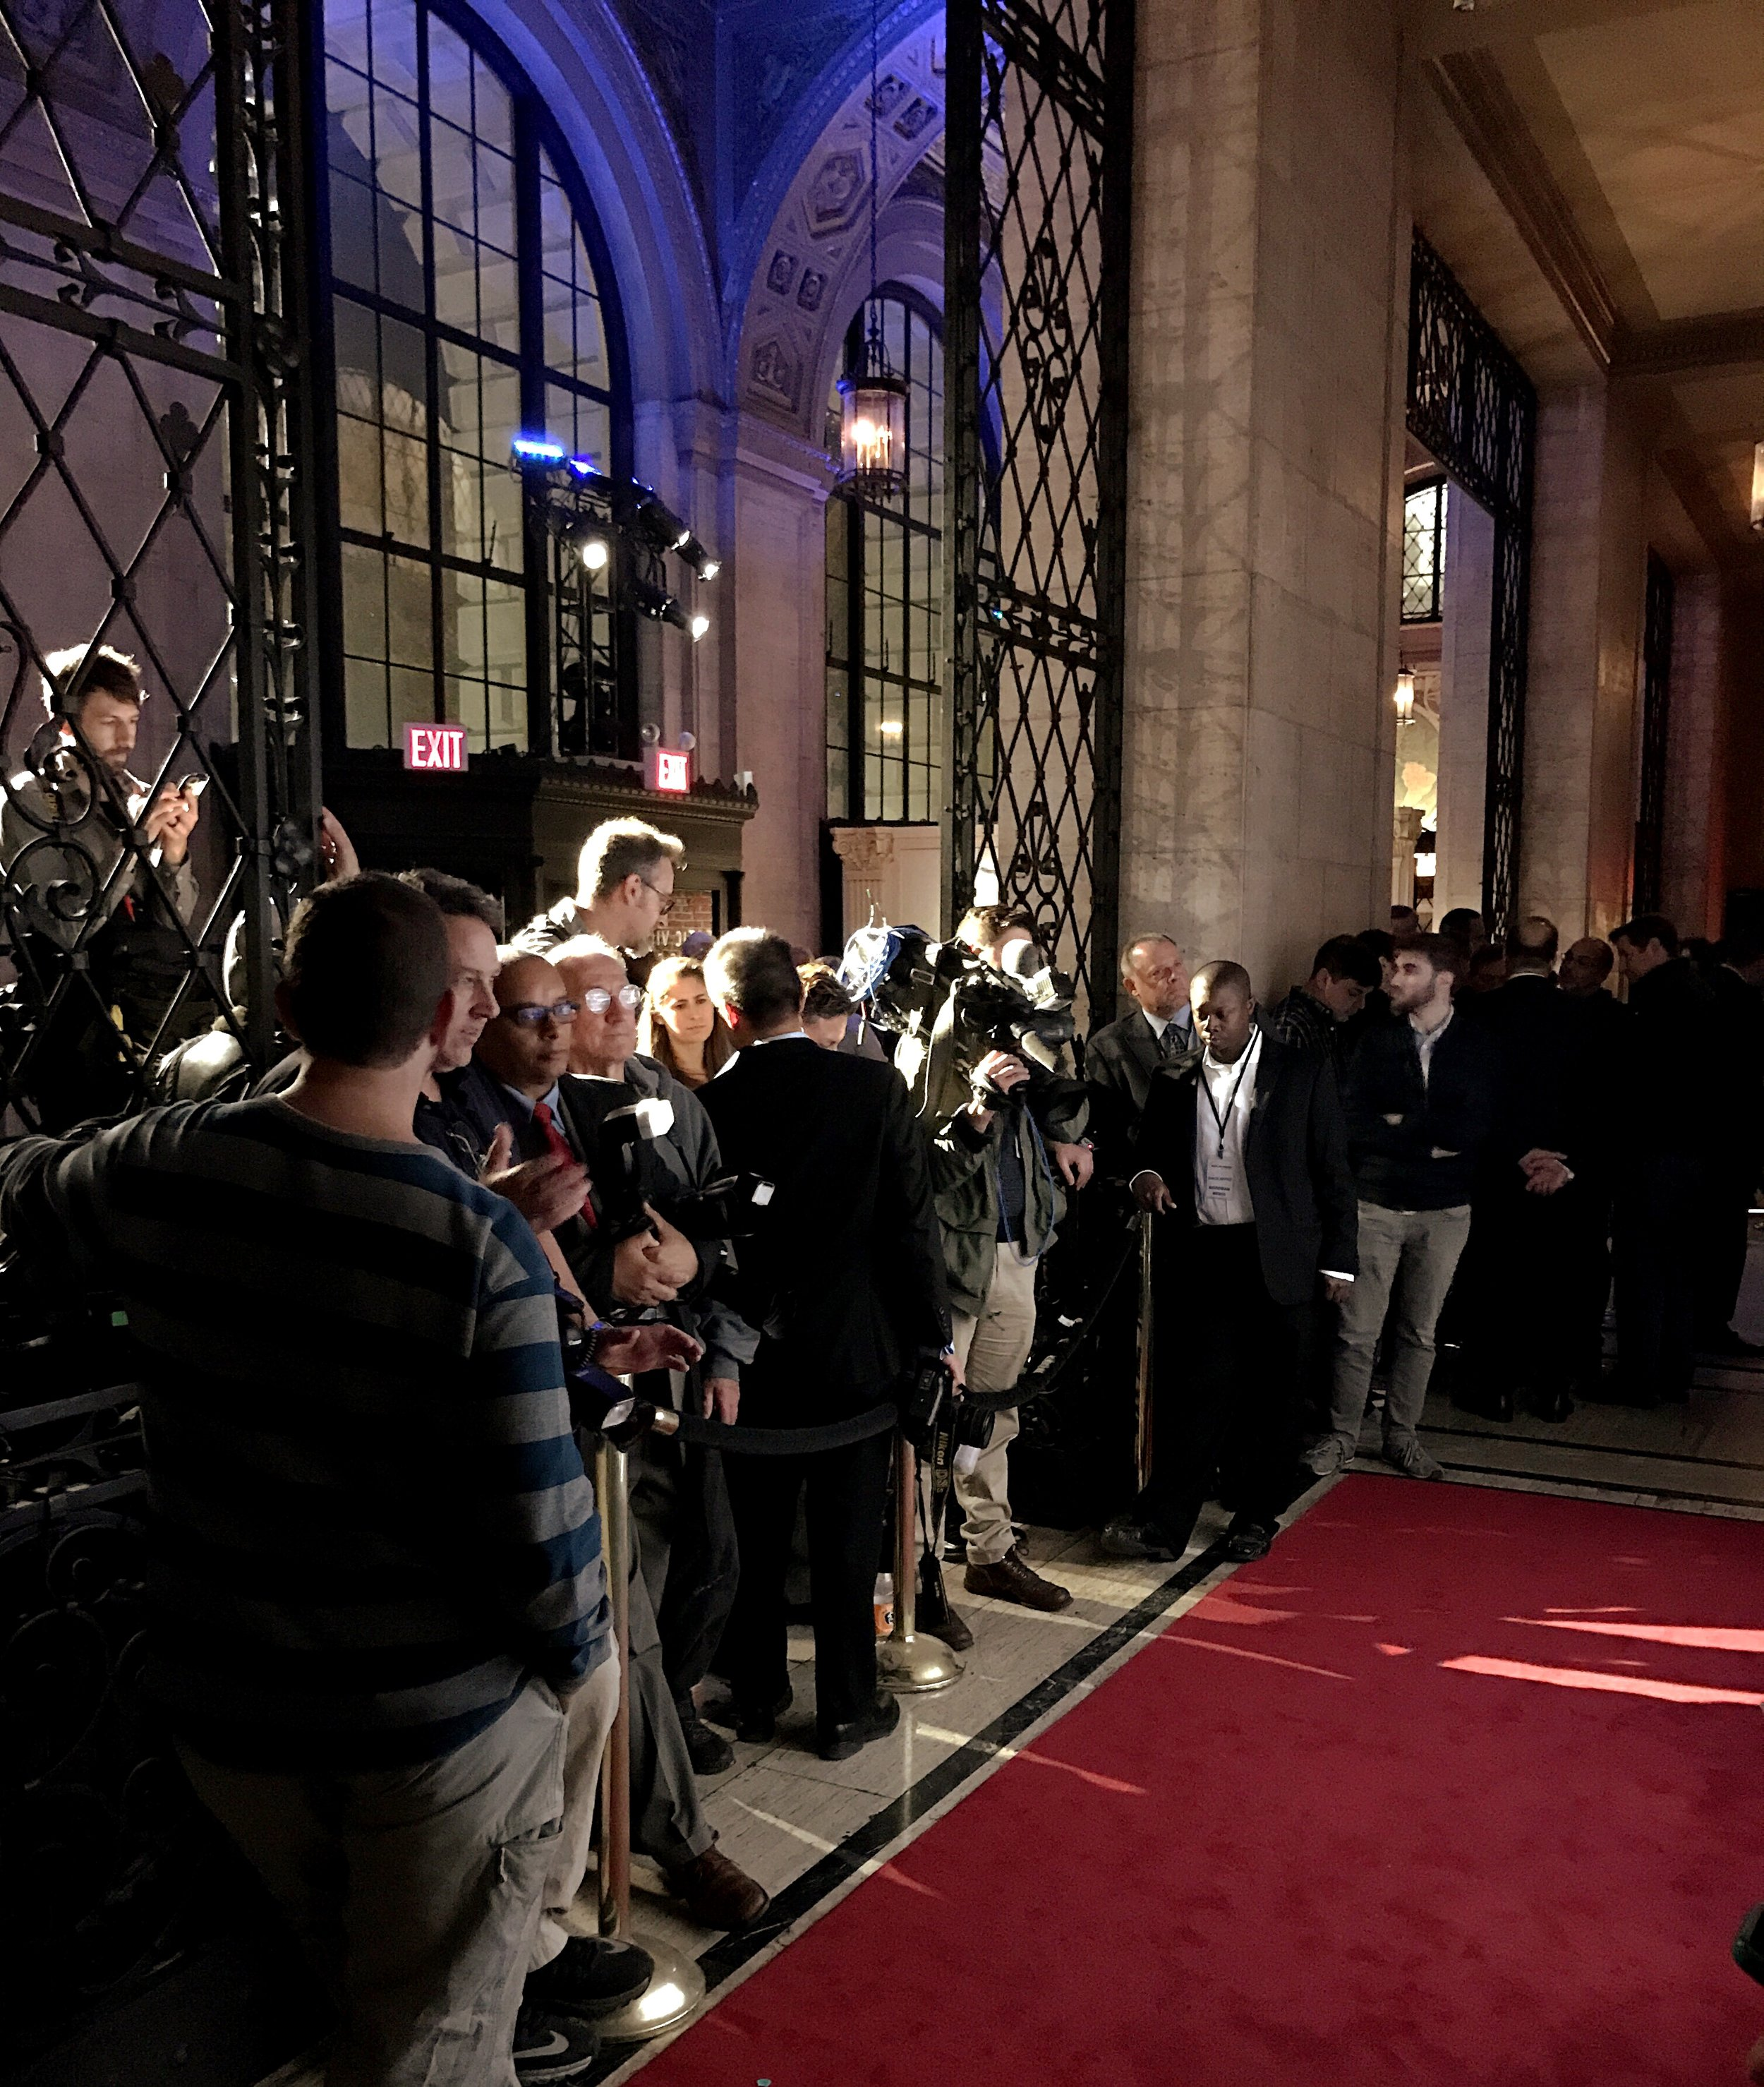 Behind-the-scenes look at media ready to capture the red carpet at The Safe At Home Foundation's annual gala at Cipriani 25 Broadway.